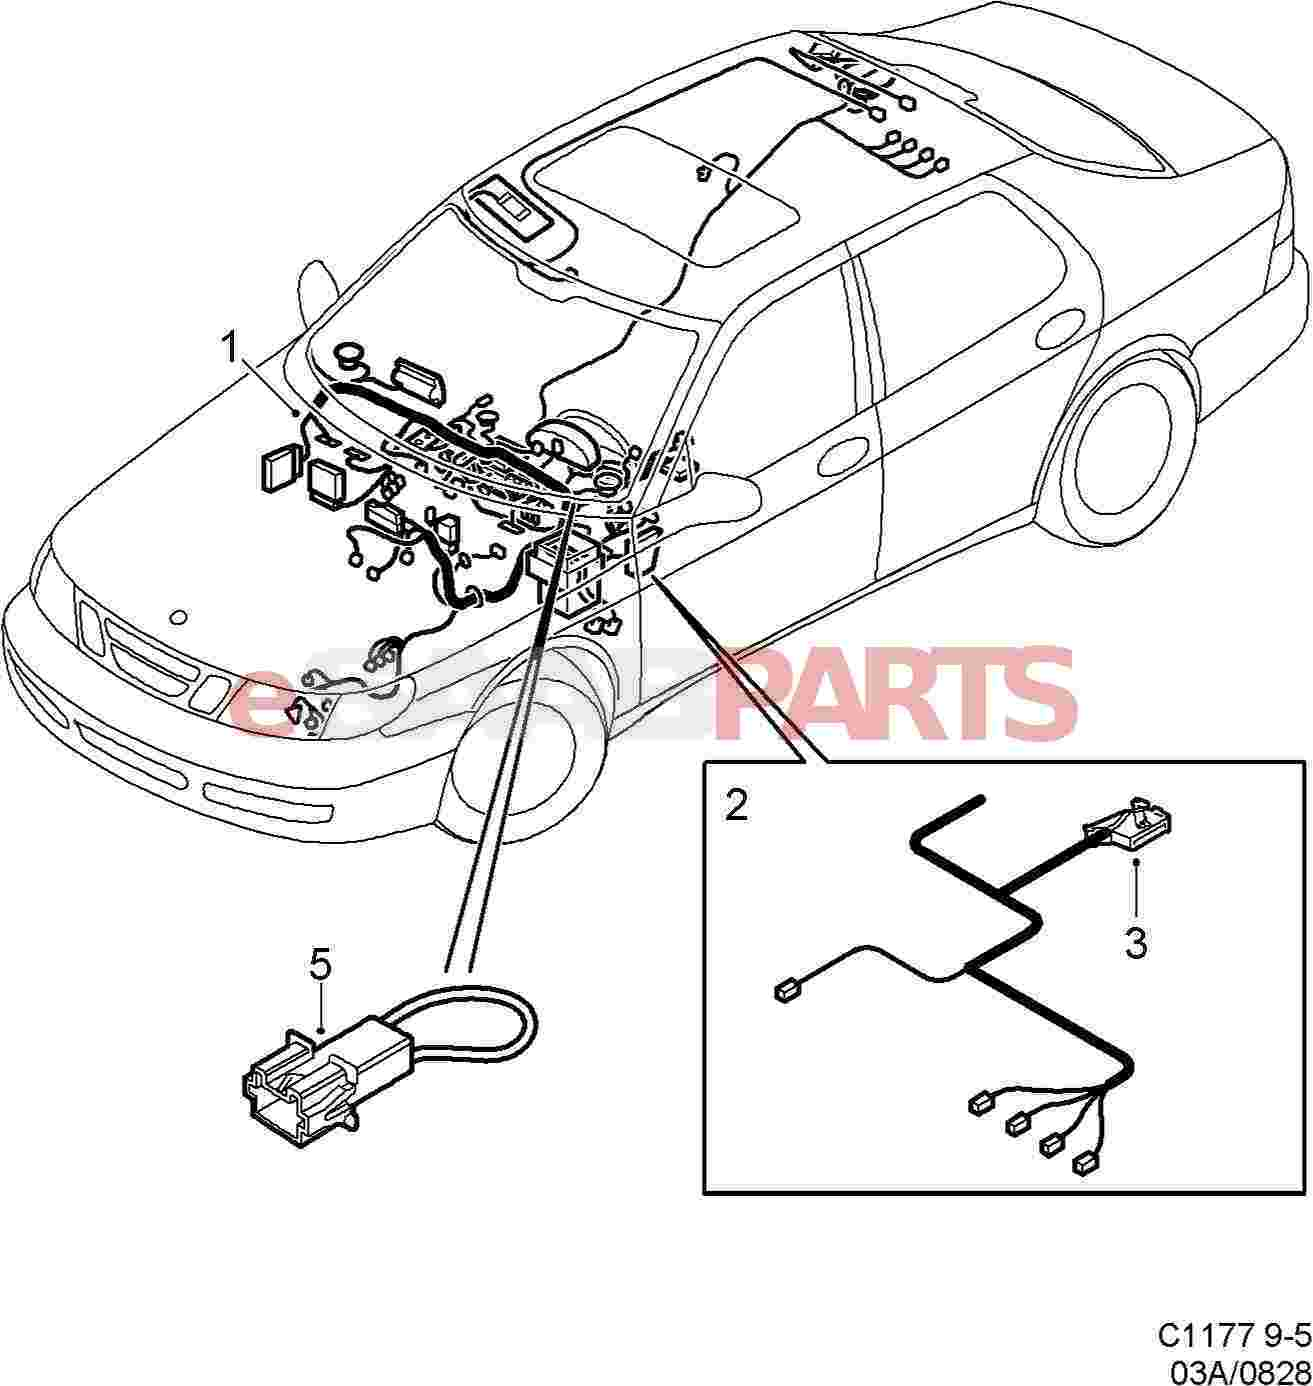 Esaabparts saab 9 5 9600 electrical parts wiring harness instrument panel